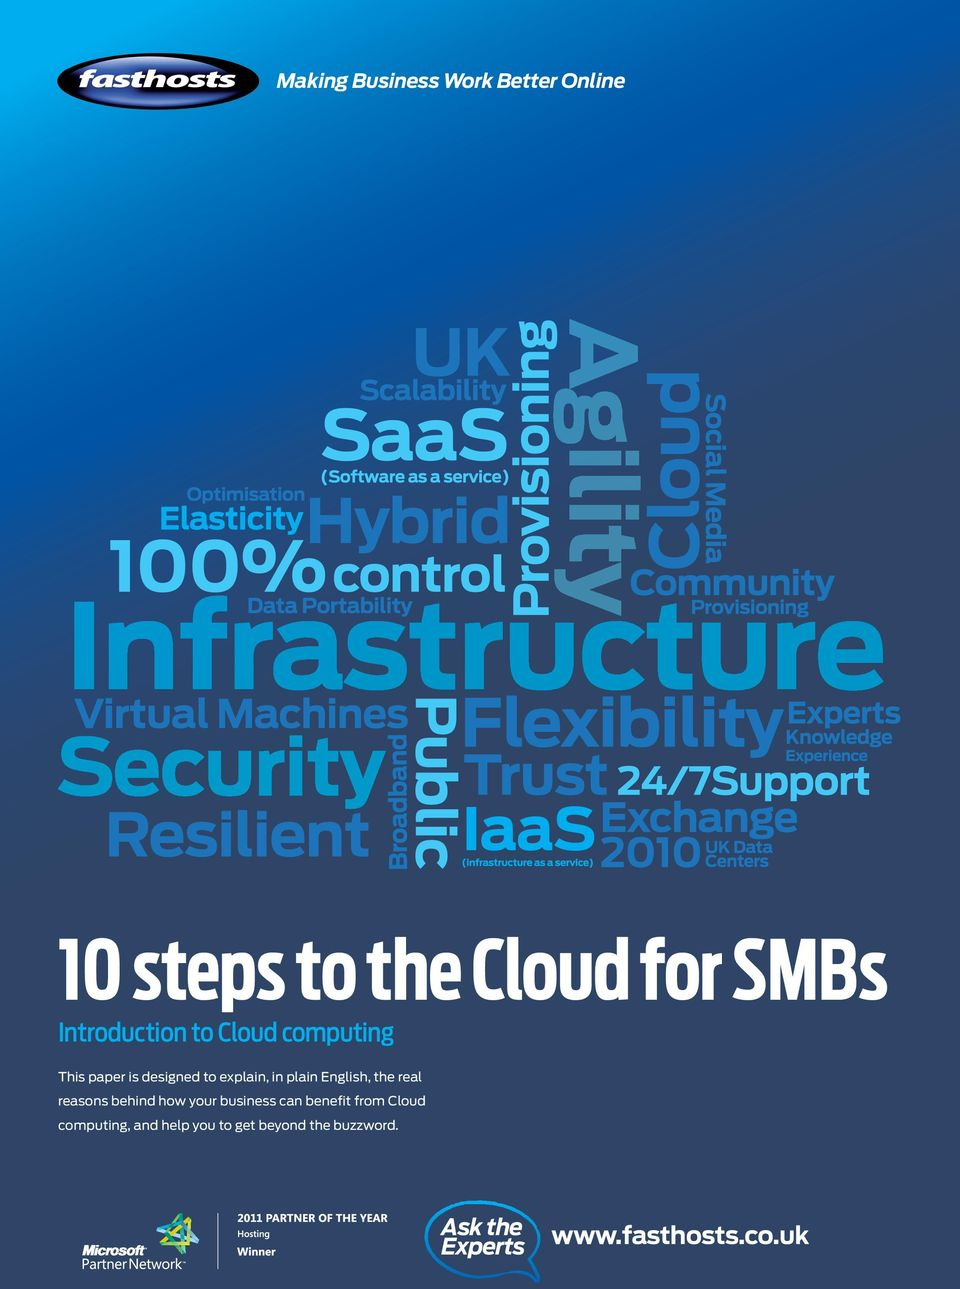 reasons behind how your business can benefit from Cloud computing,